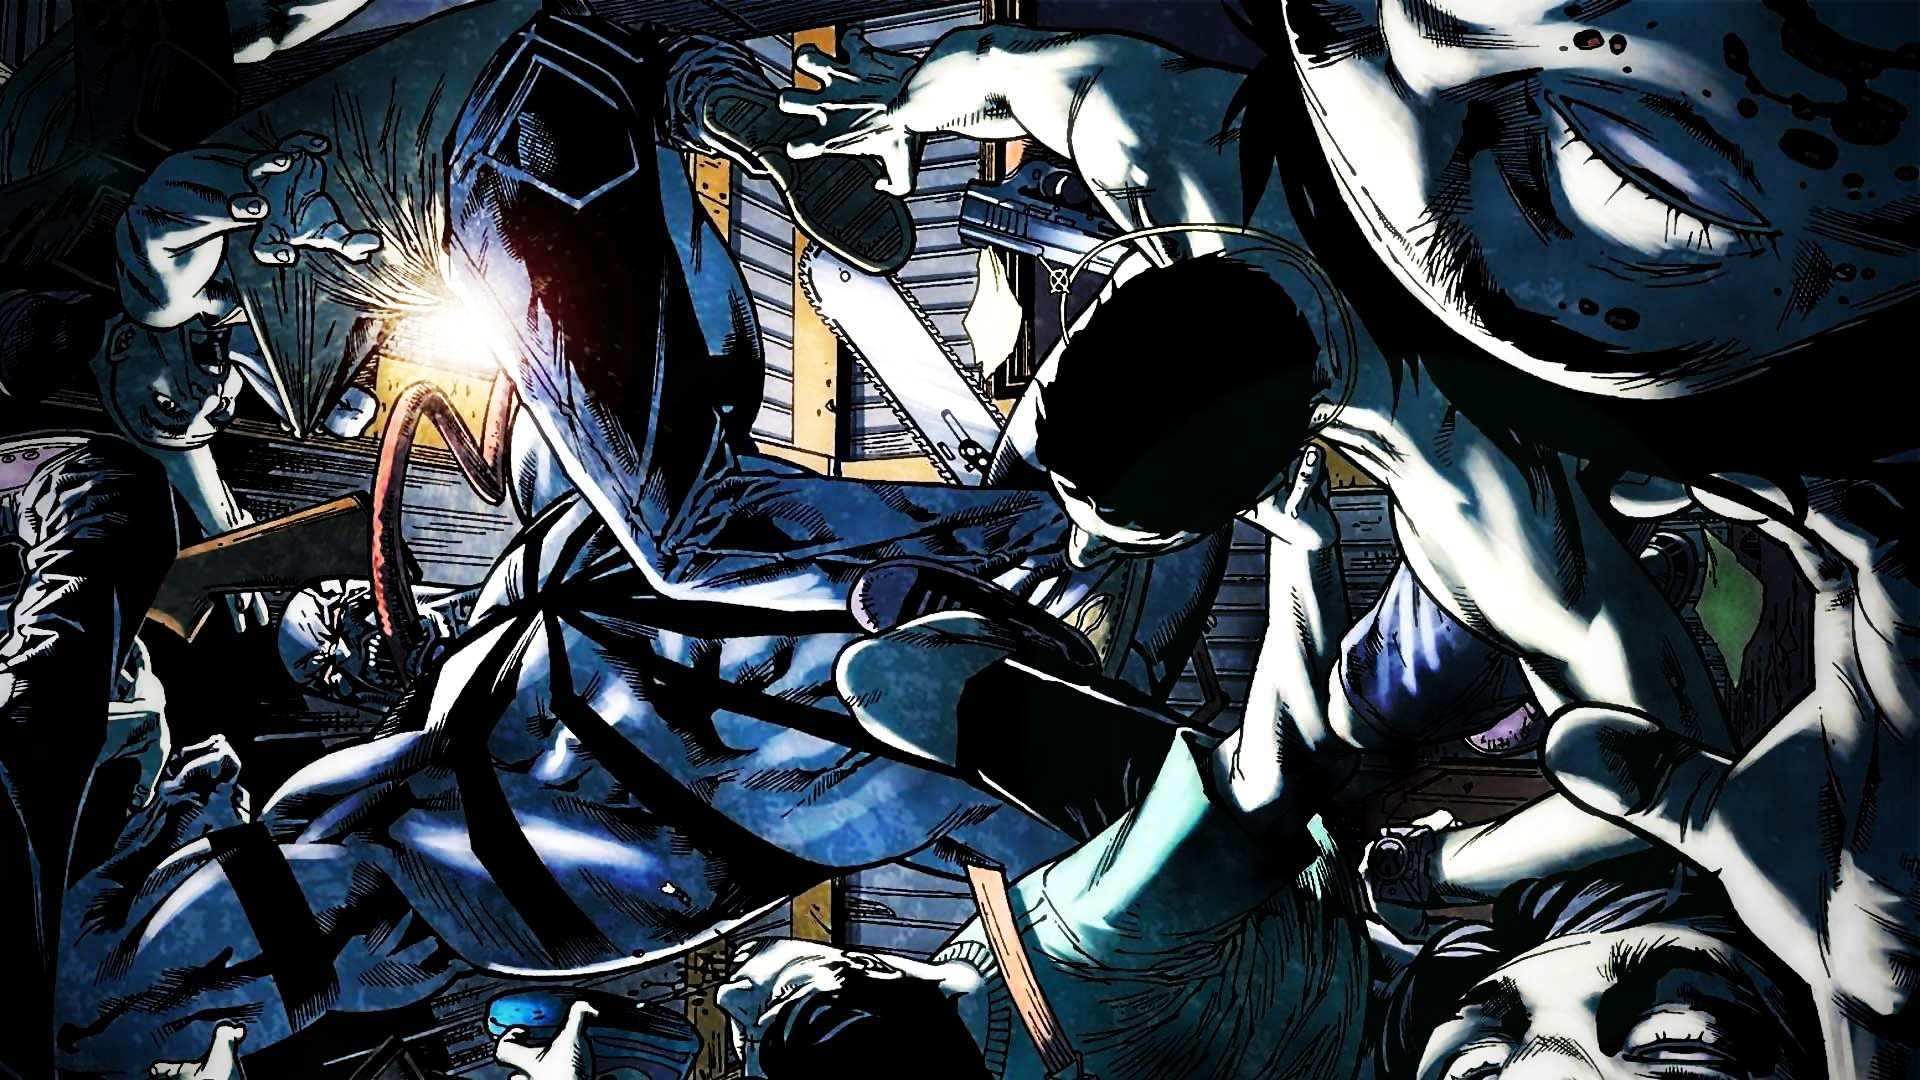 Anti Venom Wallpaper HD Resolution with HD Wallpaper Resolution  px 1.11 MB Movies Agent Ultimate